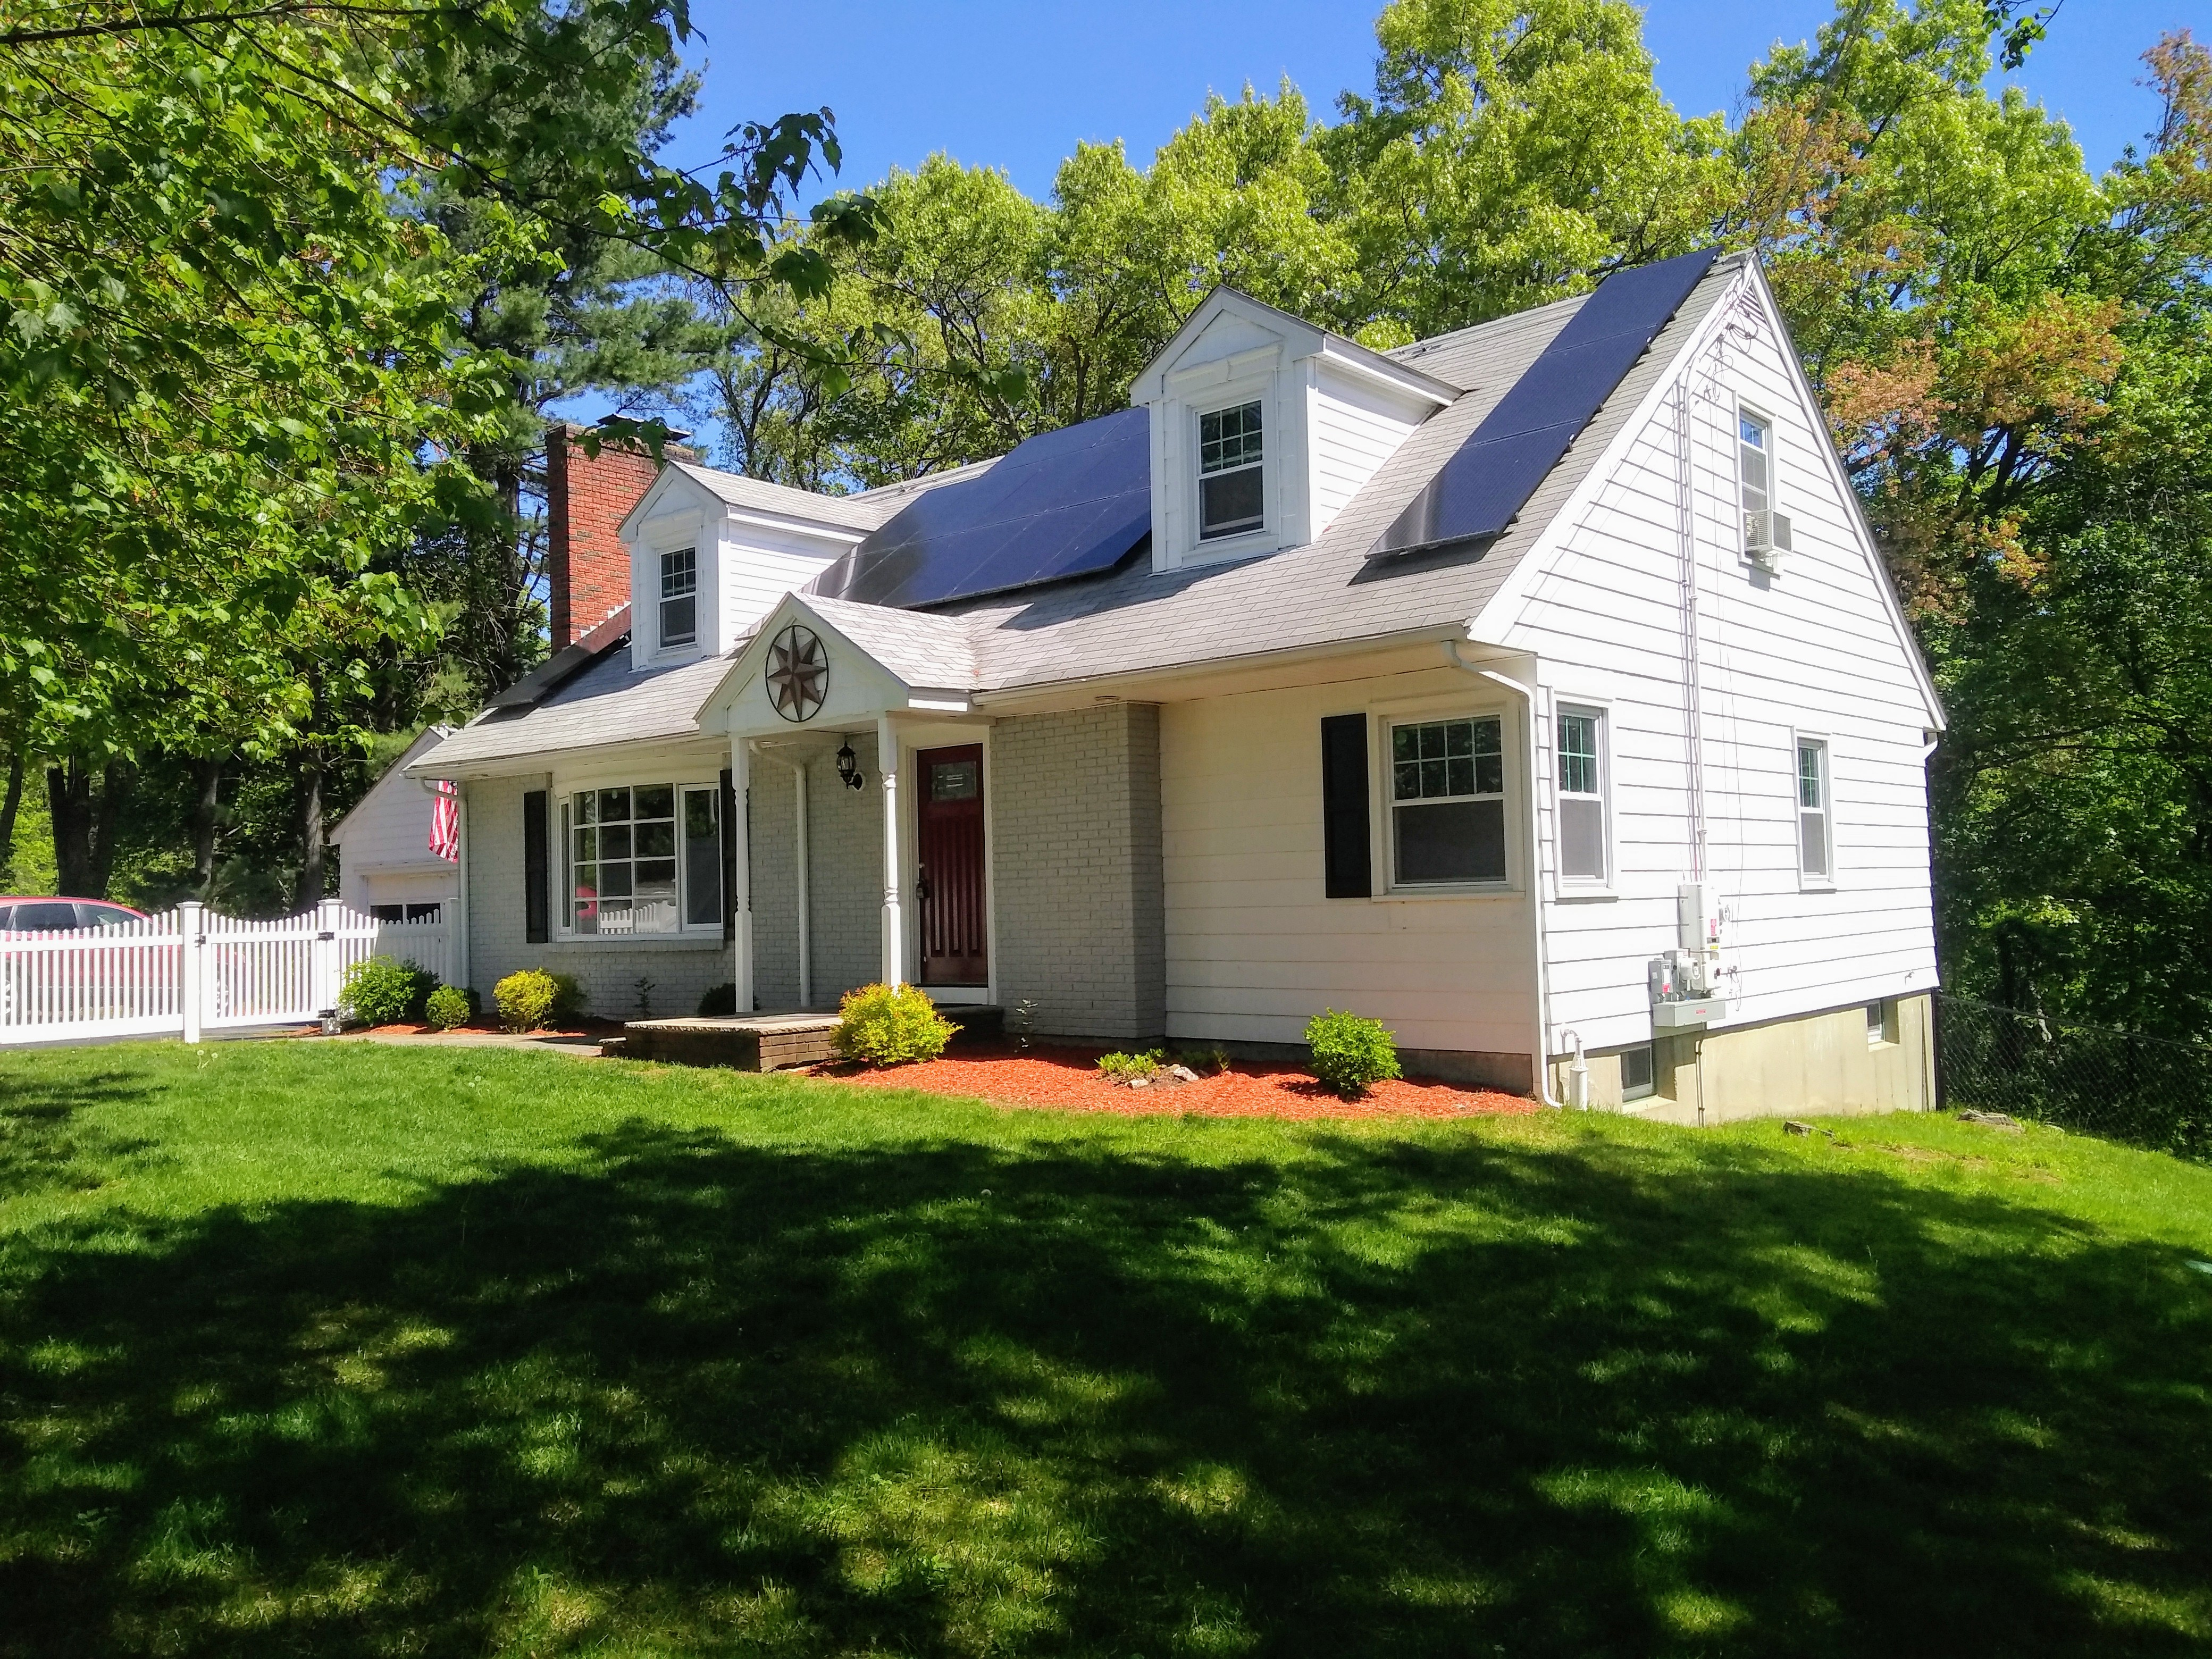 North Andover- Modern Cape Cod with Dormers